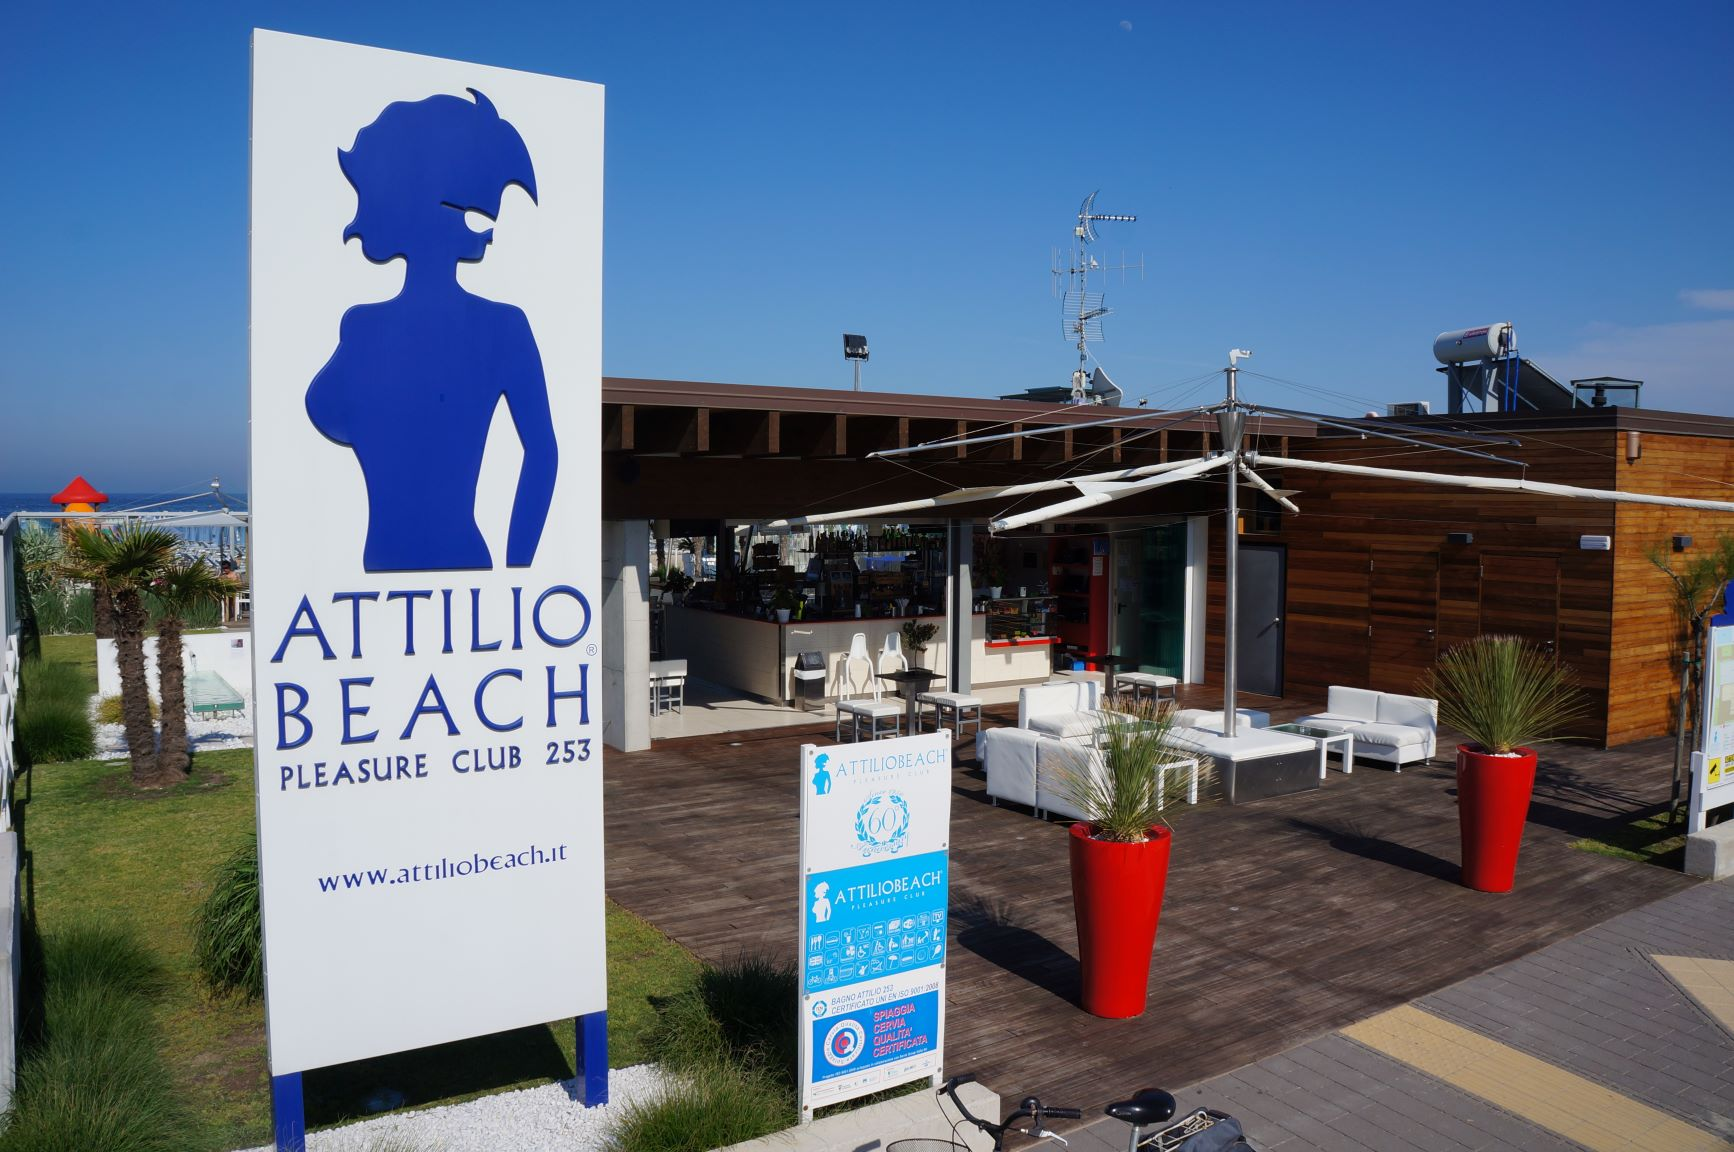 Attilio Beach Pleasure Club